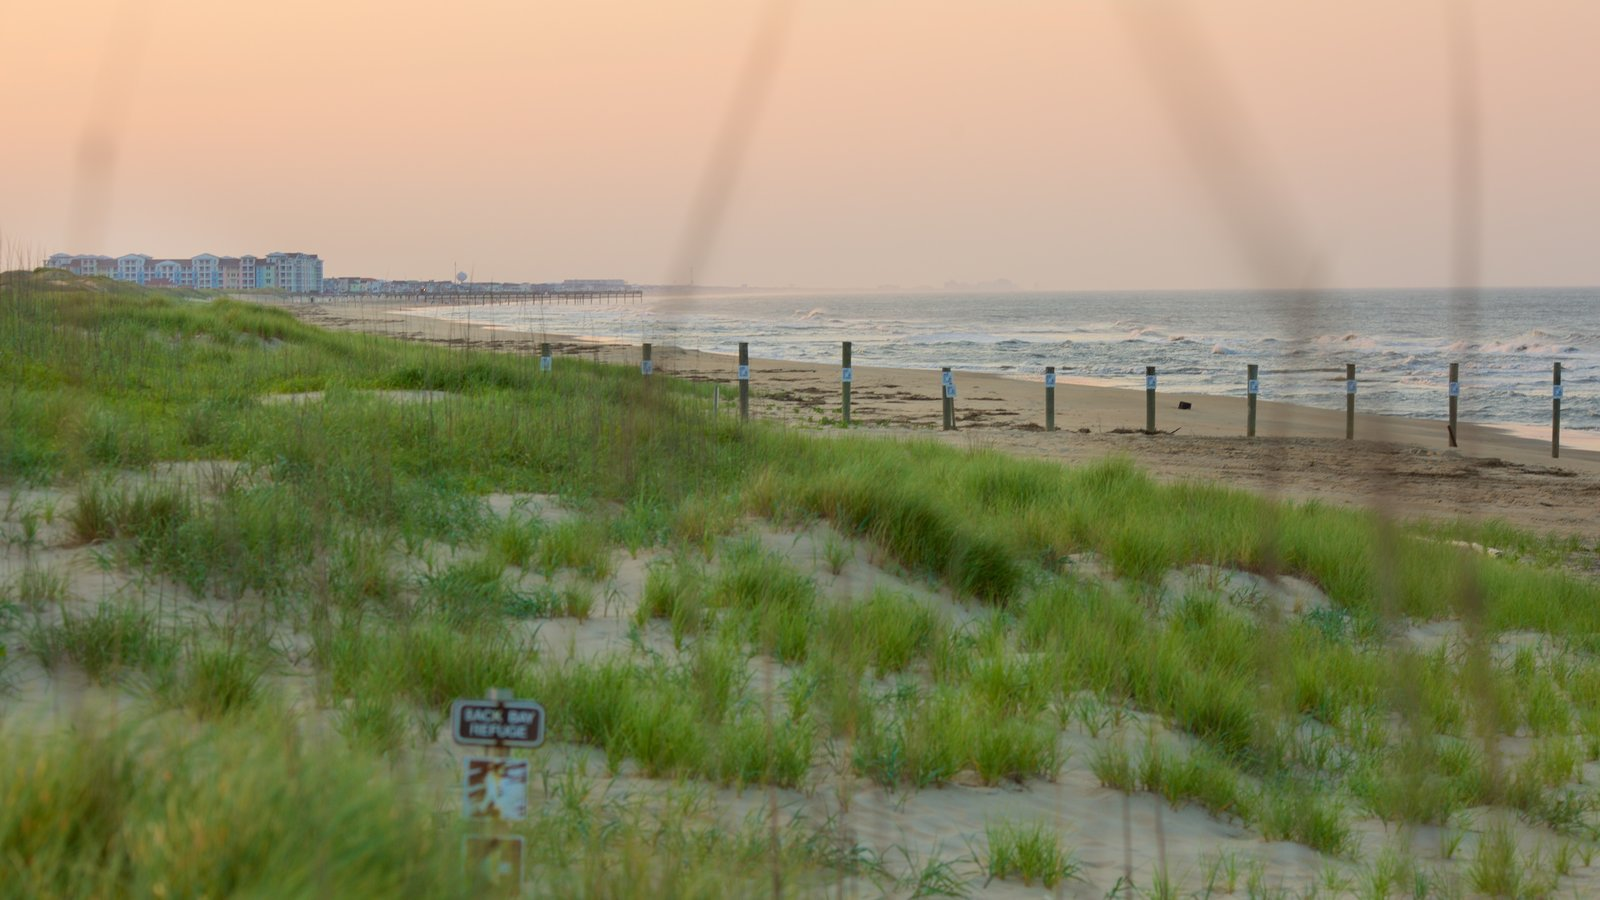 False Cape State Park featuring a beach, a sunset and landscape views